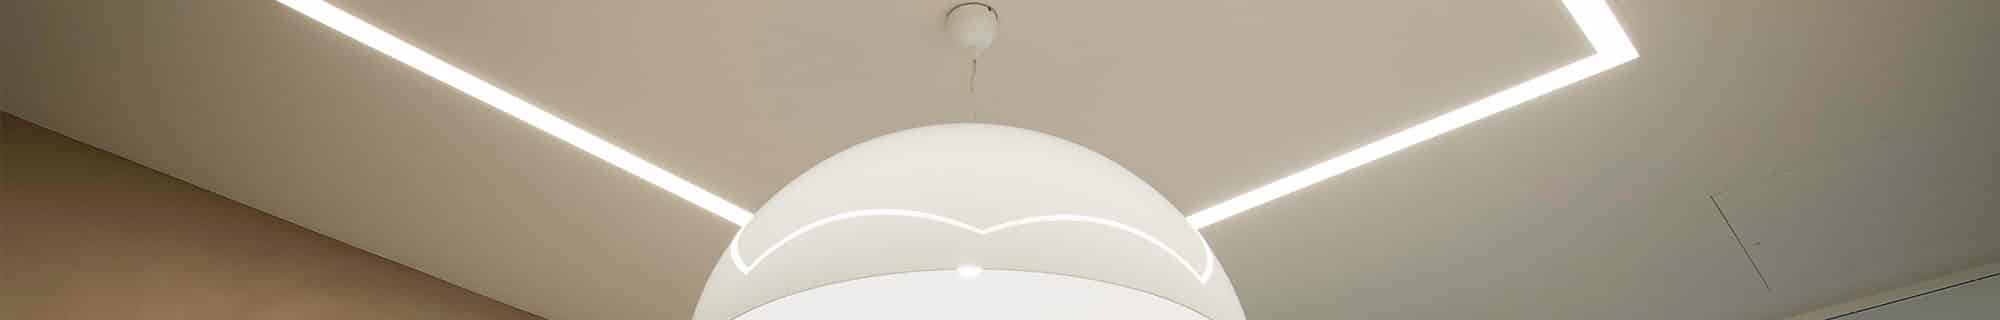 recessed ceiling lighting and pendant